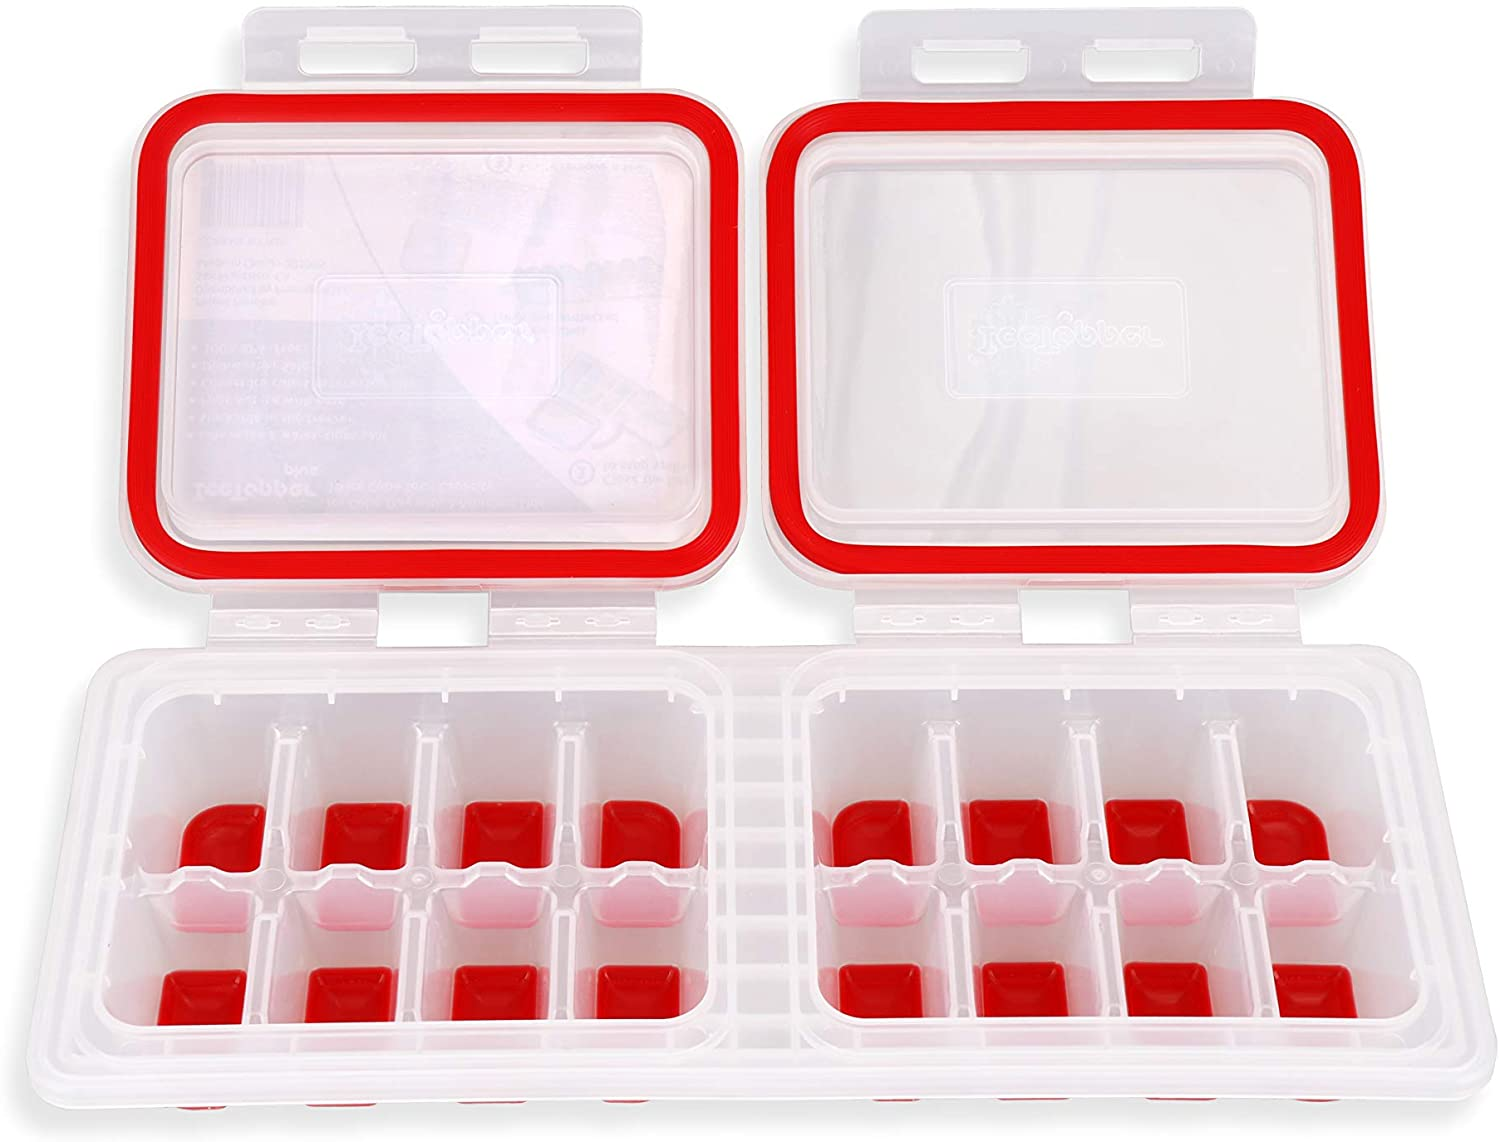 IceTopper Plus Ice Cube Tray with 2 Attached Lids - Easy Release Ice Cube Molds, 16 Cubes per Tray, Stackable & Dishwasher Safe, 100% Food Grade Silicone, BPA Free & Recyclable